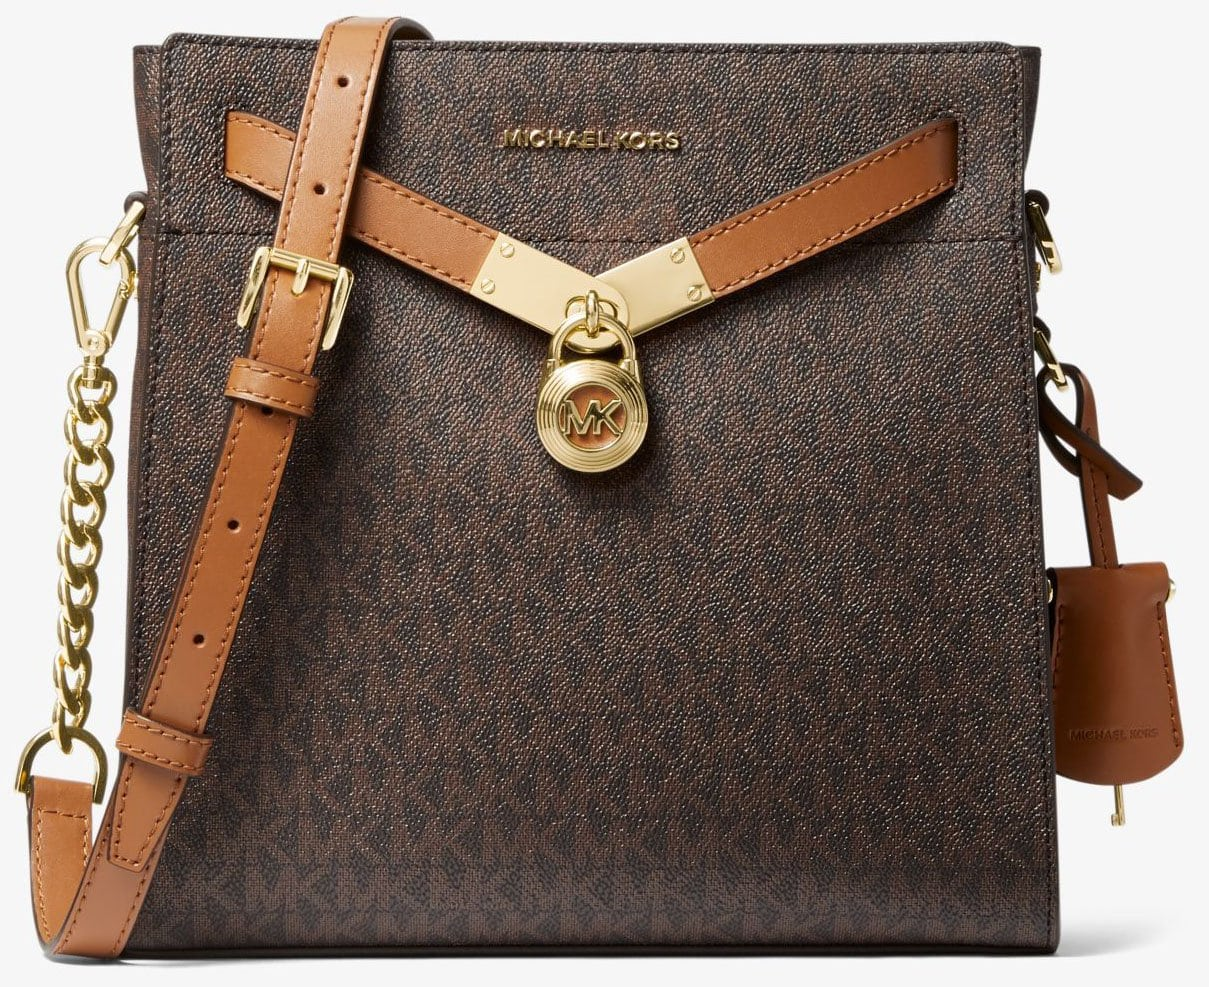 Michael Kors' Nouveau Hamilton messenger bag is considered as one of the label's classic bag designs